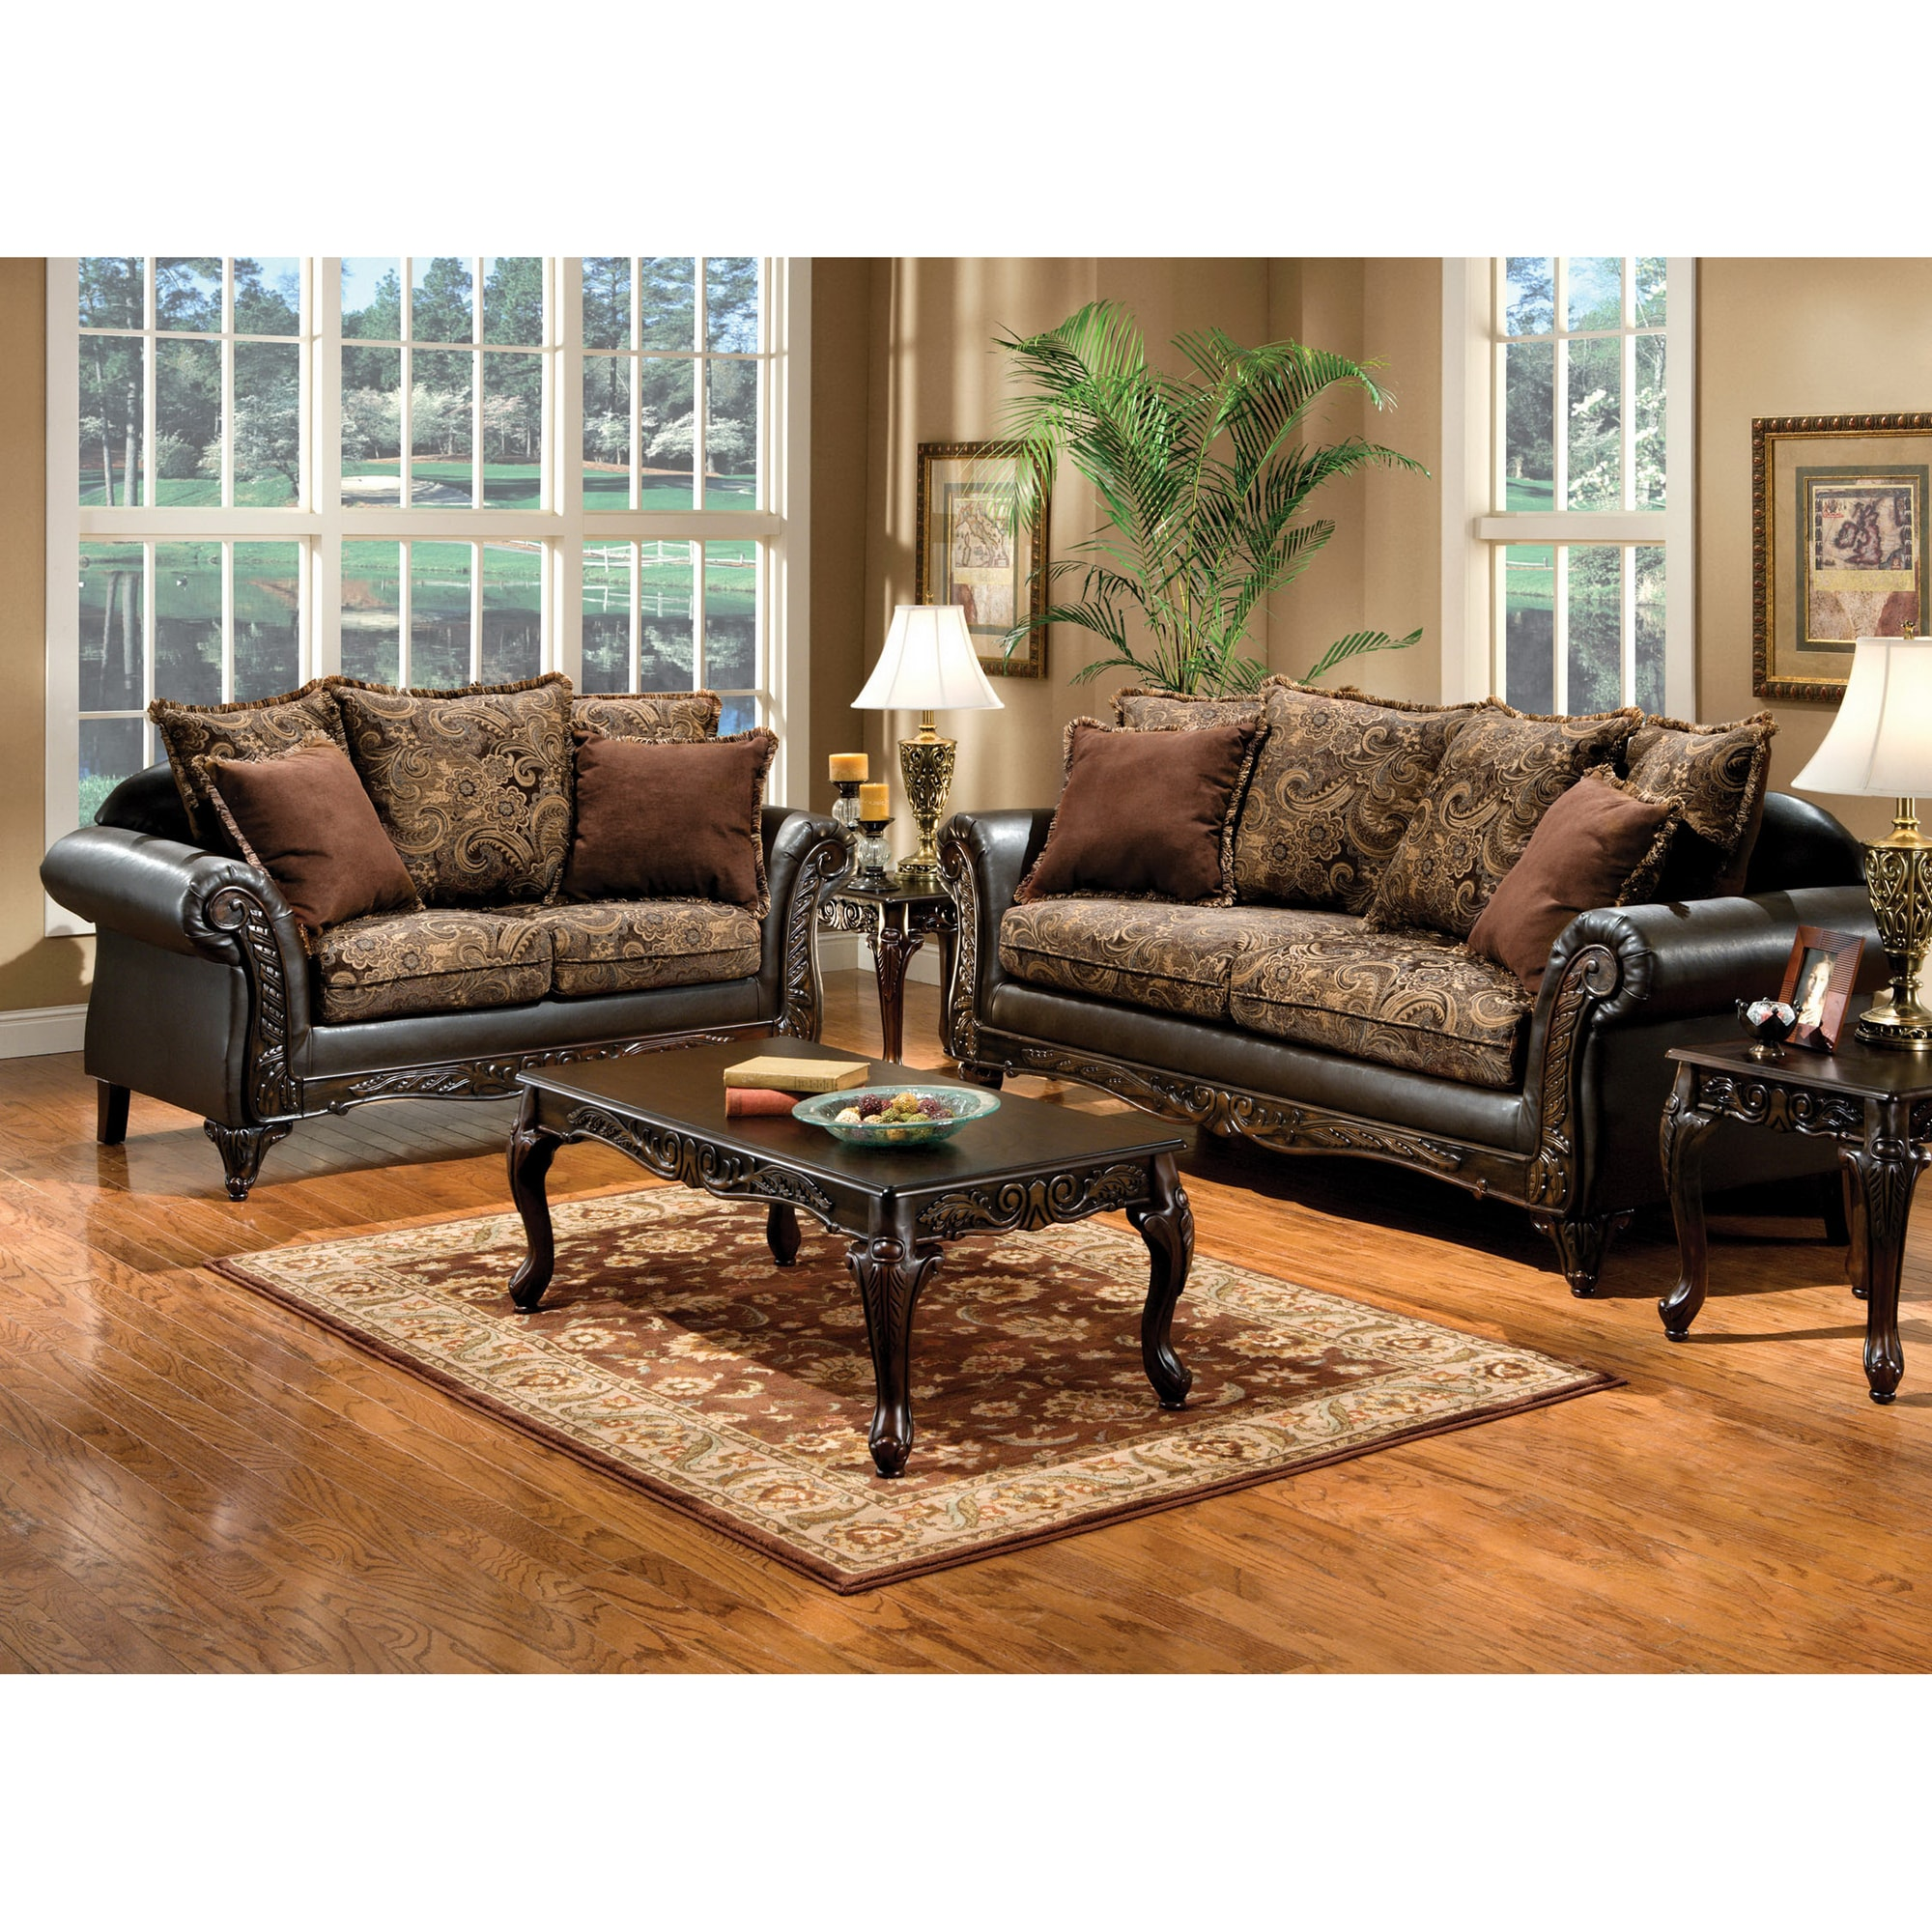 Floral Living Room Sets: Furniture Of America Ruthy Traditional Dark Brown Floral